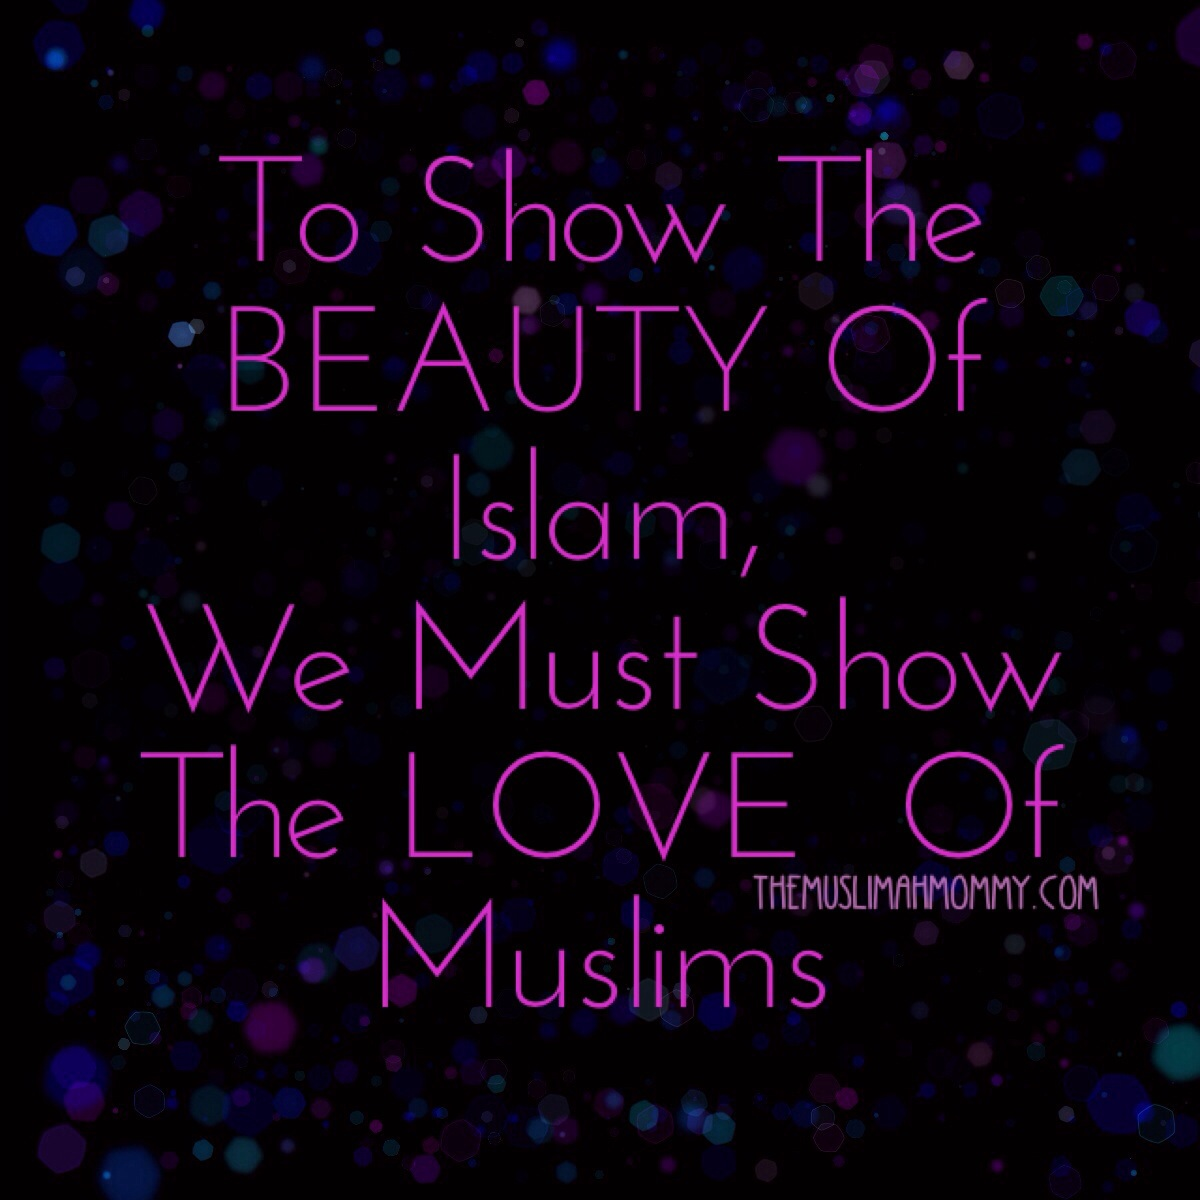 Showing Love: Islam – Quotes & Inspiration